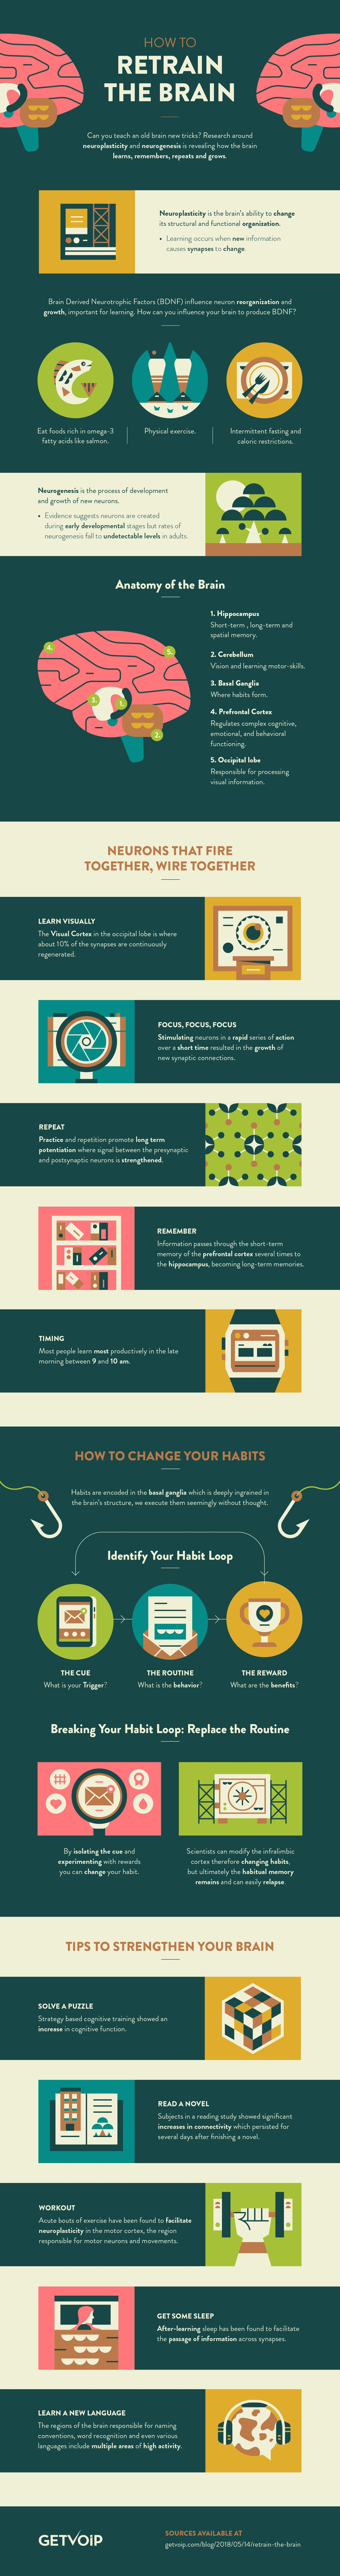 Retrain the Brain Infographic